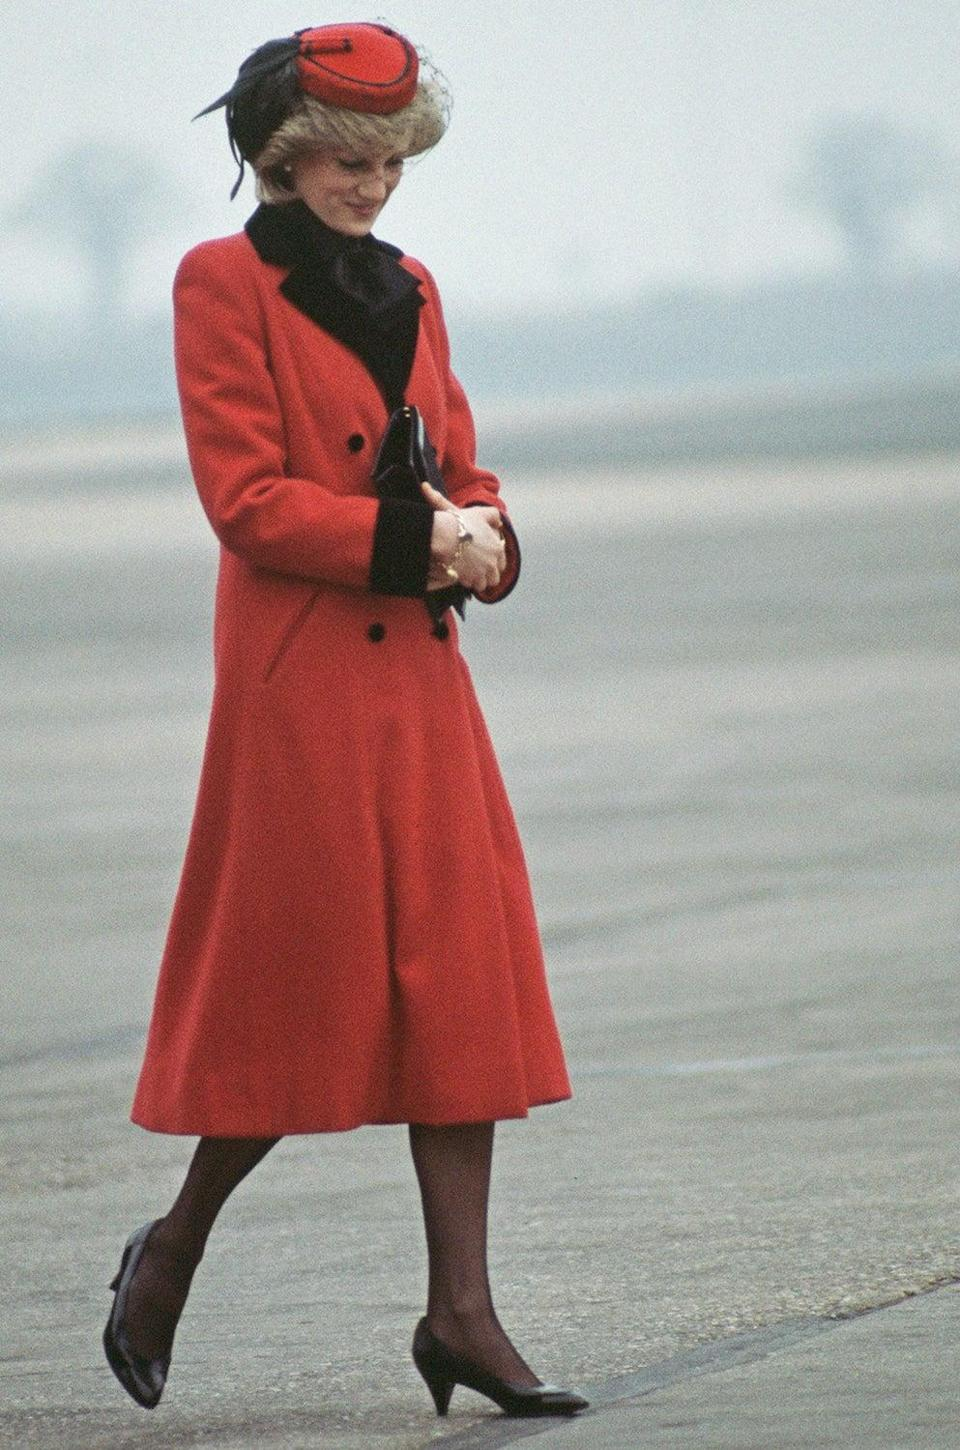 Diana, Princess of Wales wearing a red Catherine Walker coat upon her arrival to Birmingham airport in February 1984 (Jayne Fincher/Princess Diana Archiv)